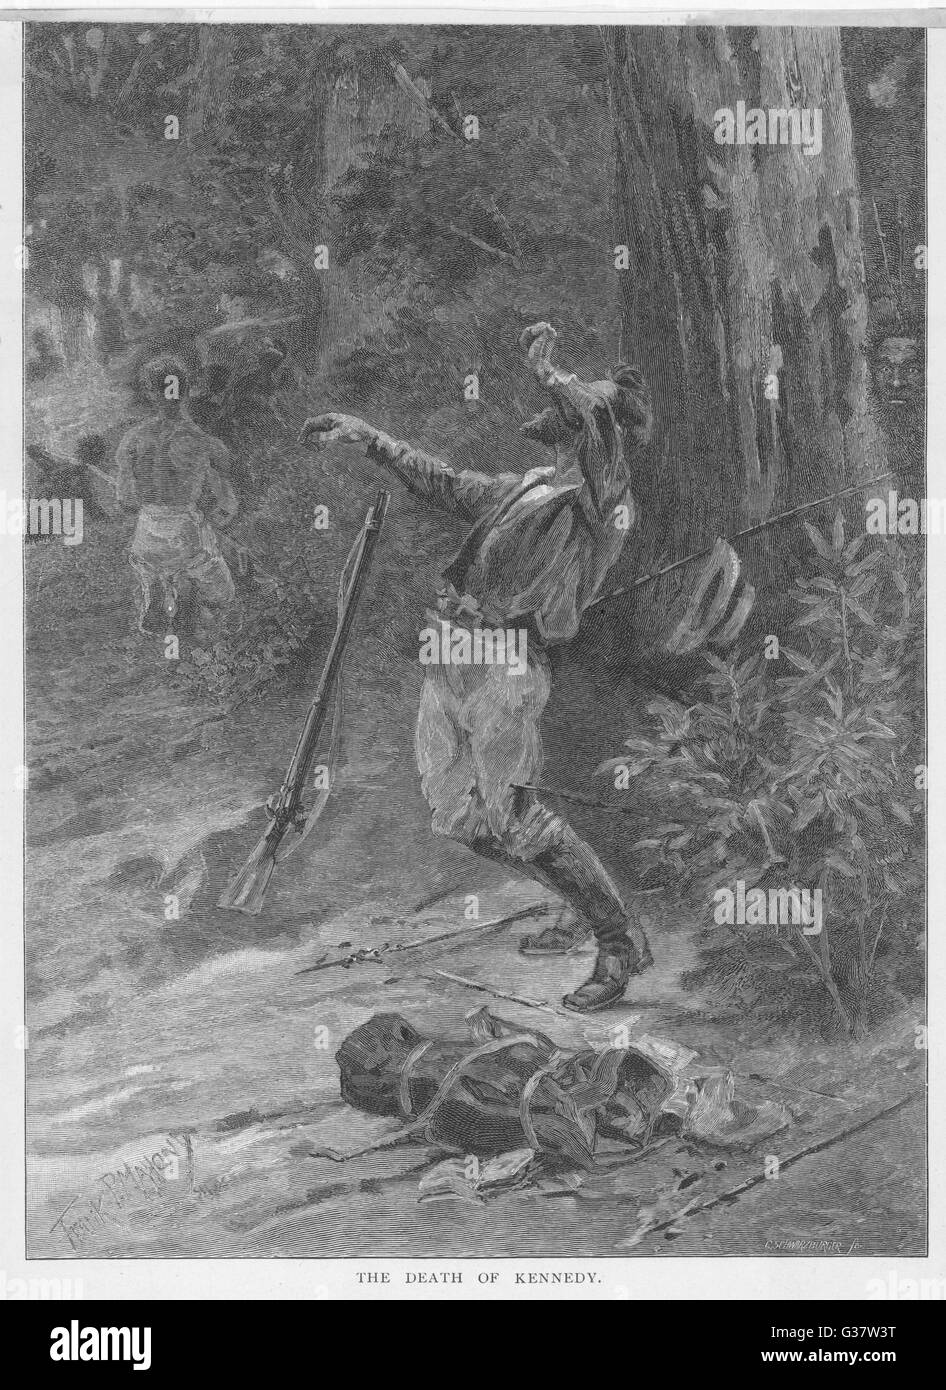 EDMUND KENNEDY, explorer, is  killed by aboriginals         Date: 1848 - Stock Image